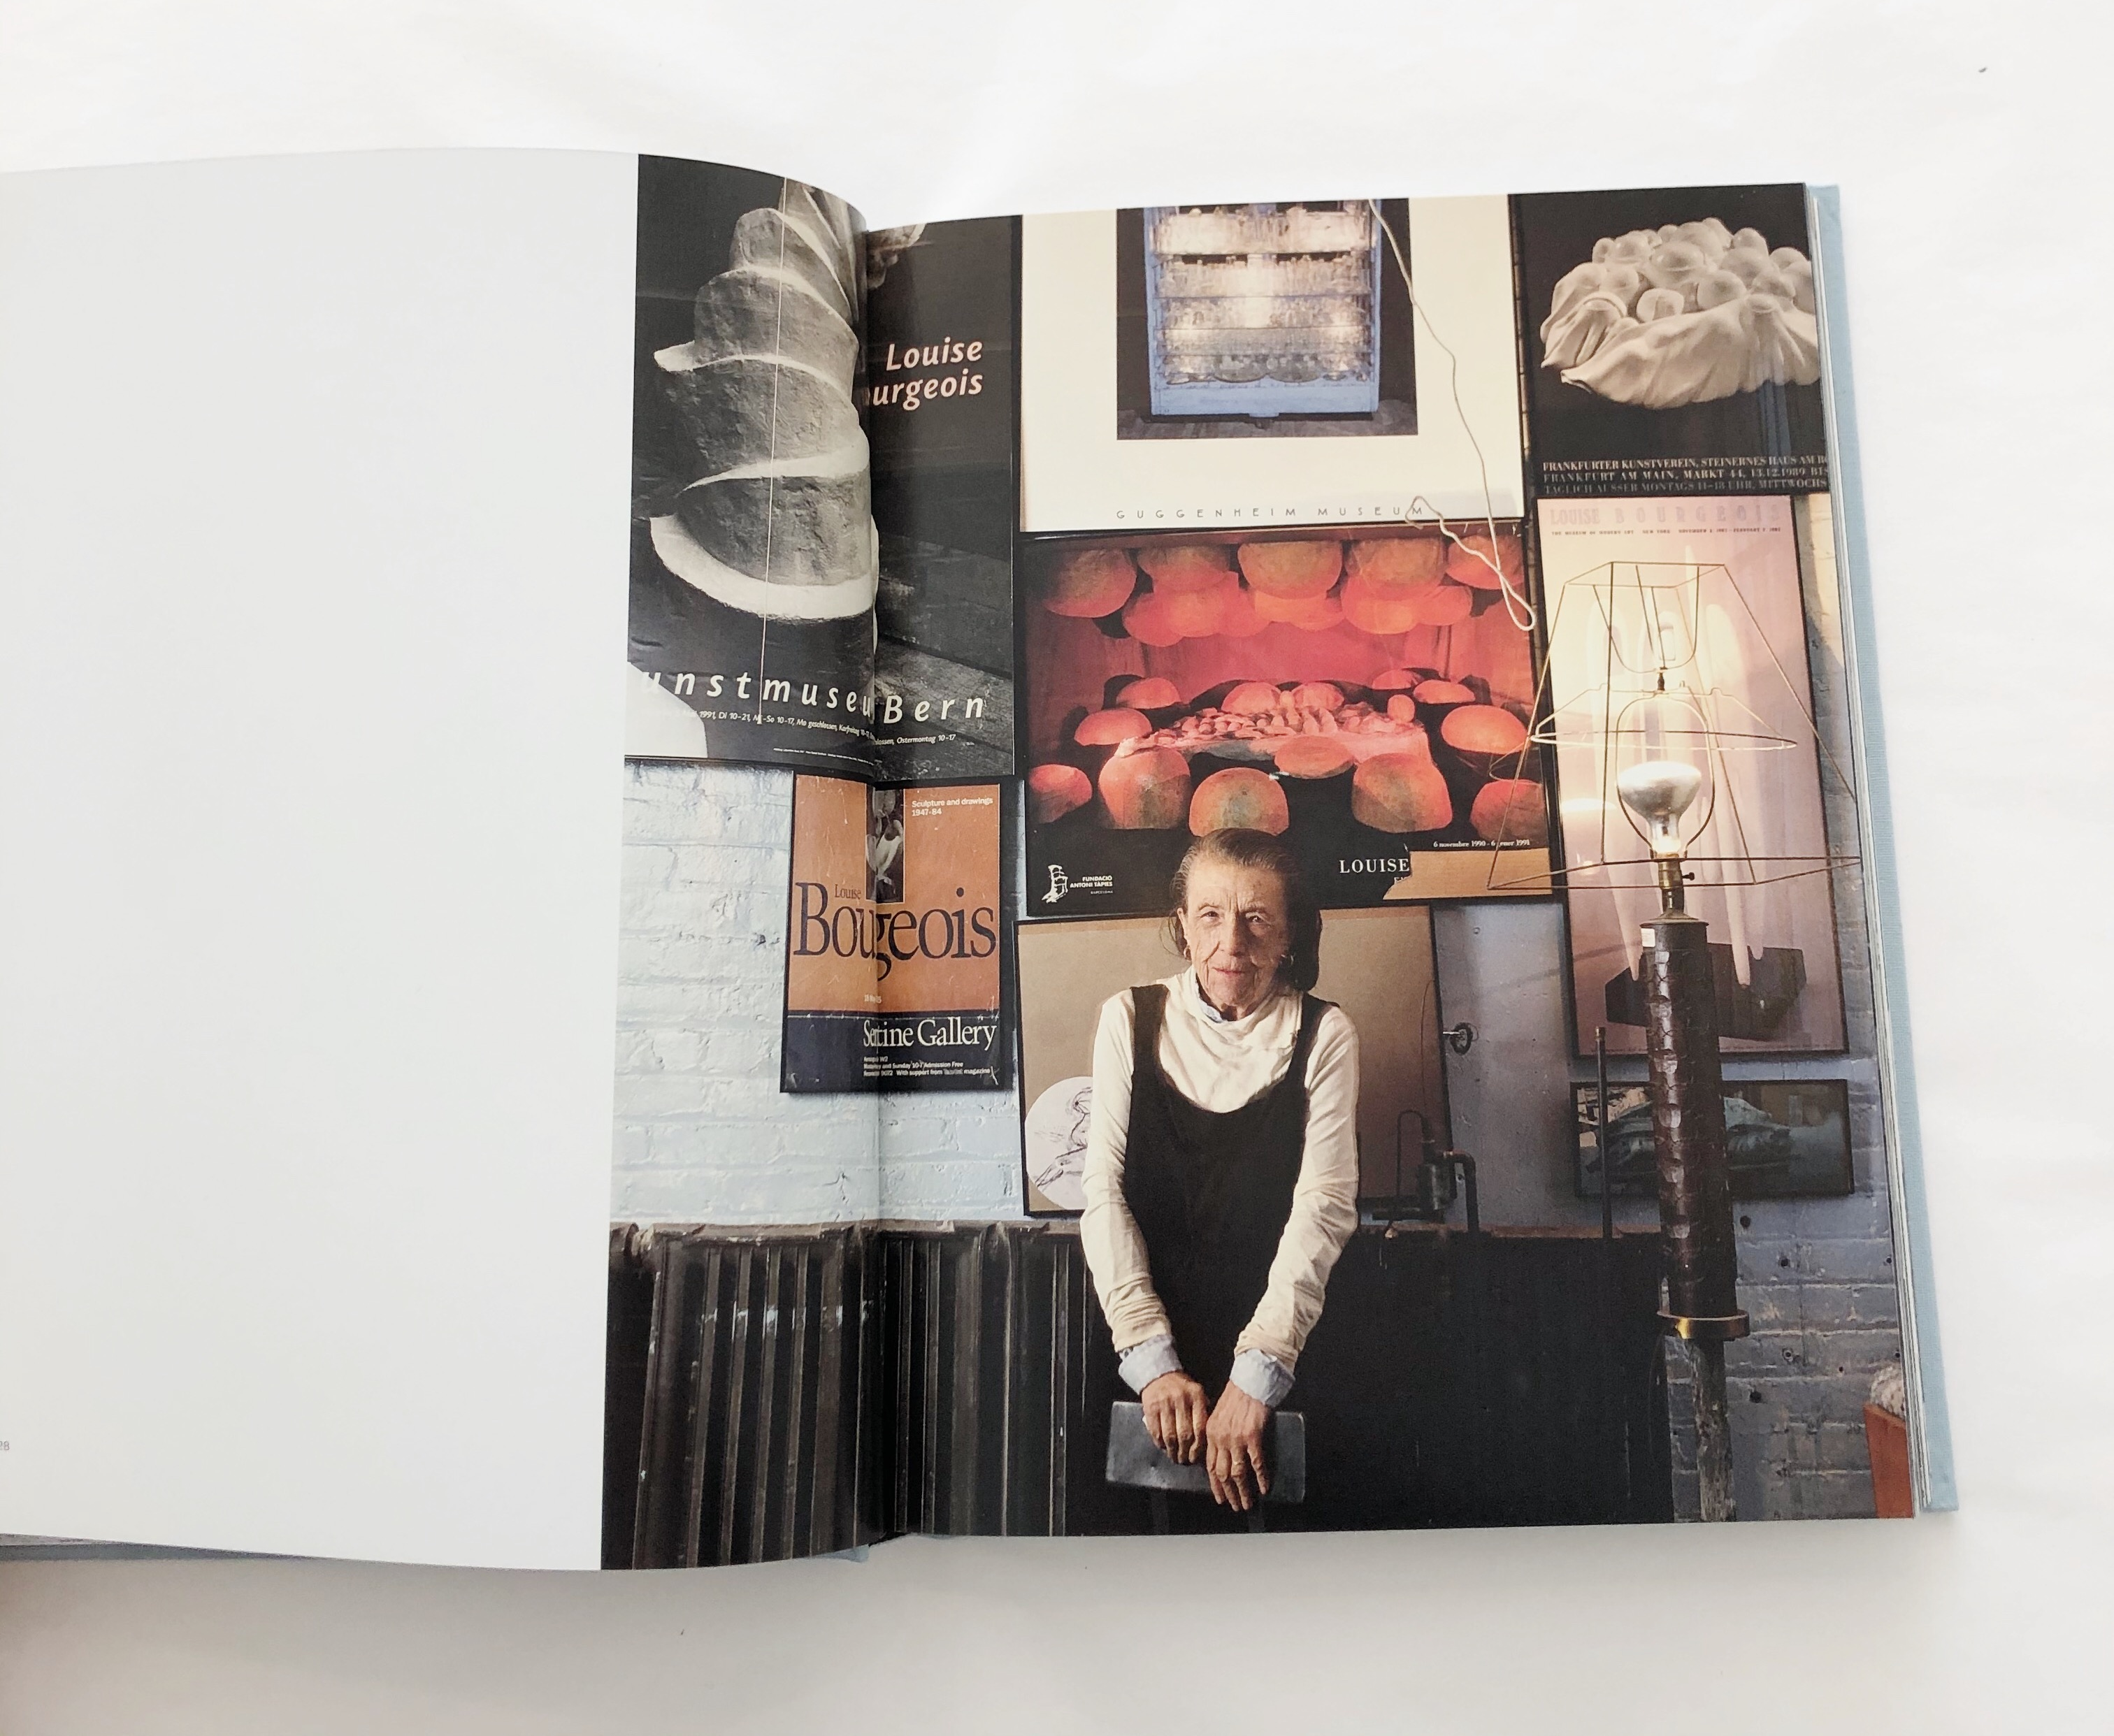 Louise Bourgeois - An Intimate Portrait